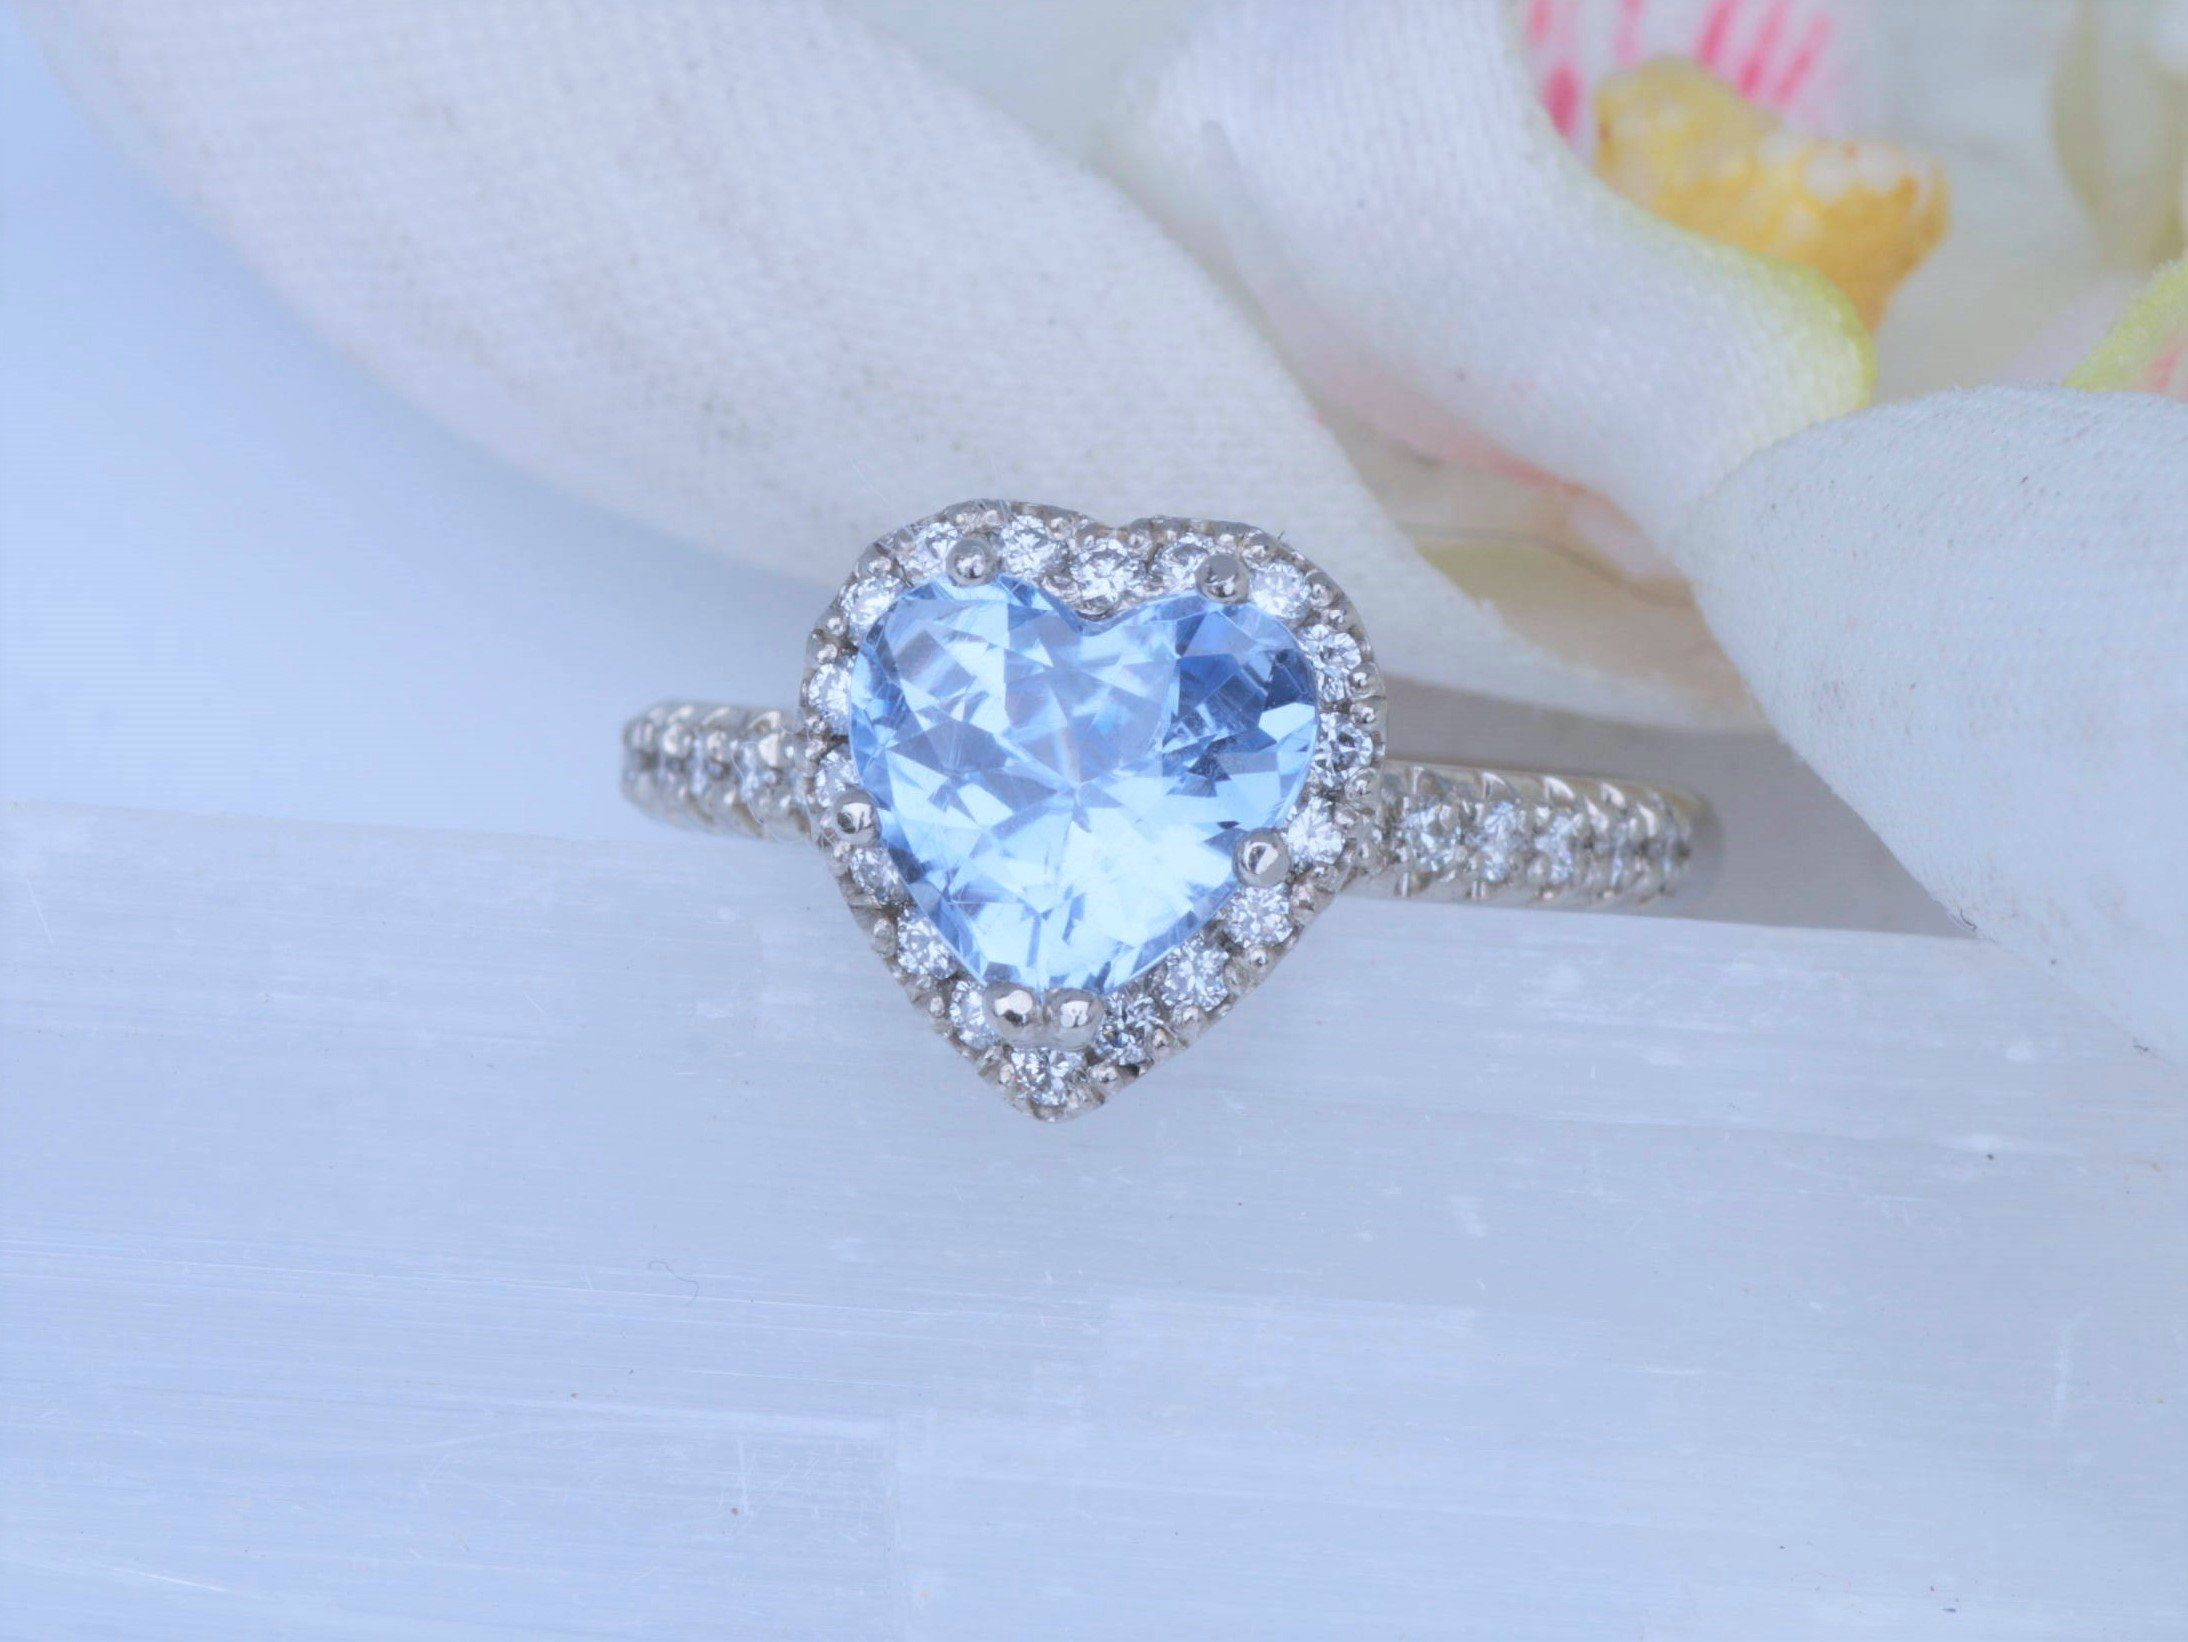 pinterest by sapphire this features light siegel diana blue oval splendor treasure ring gold and sophisticated bridal milgrain with an on sublime diamond pin hand white accents rings